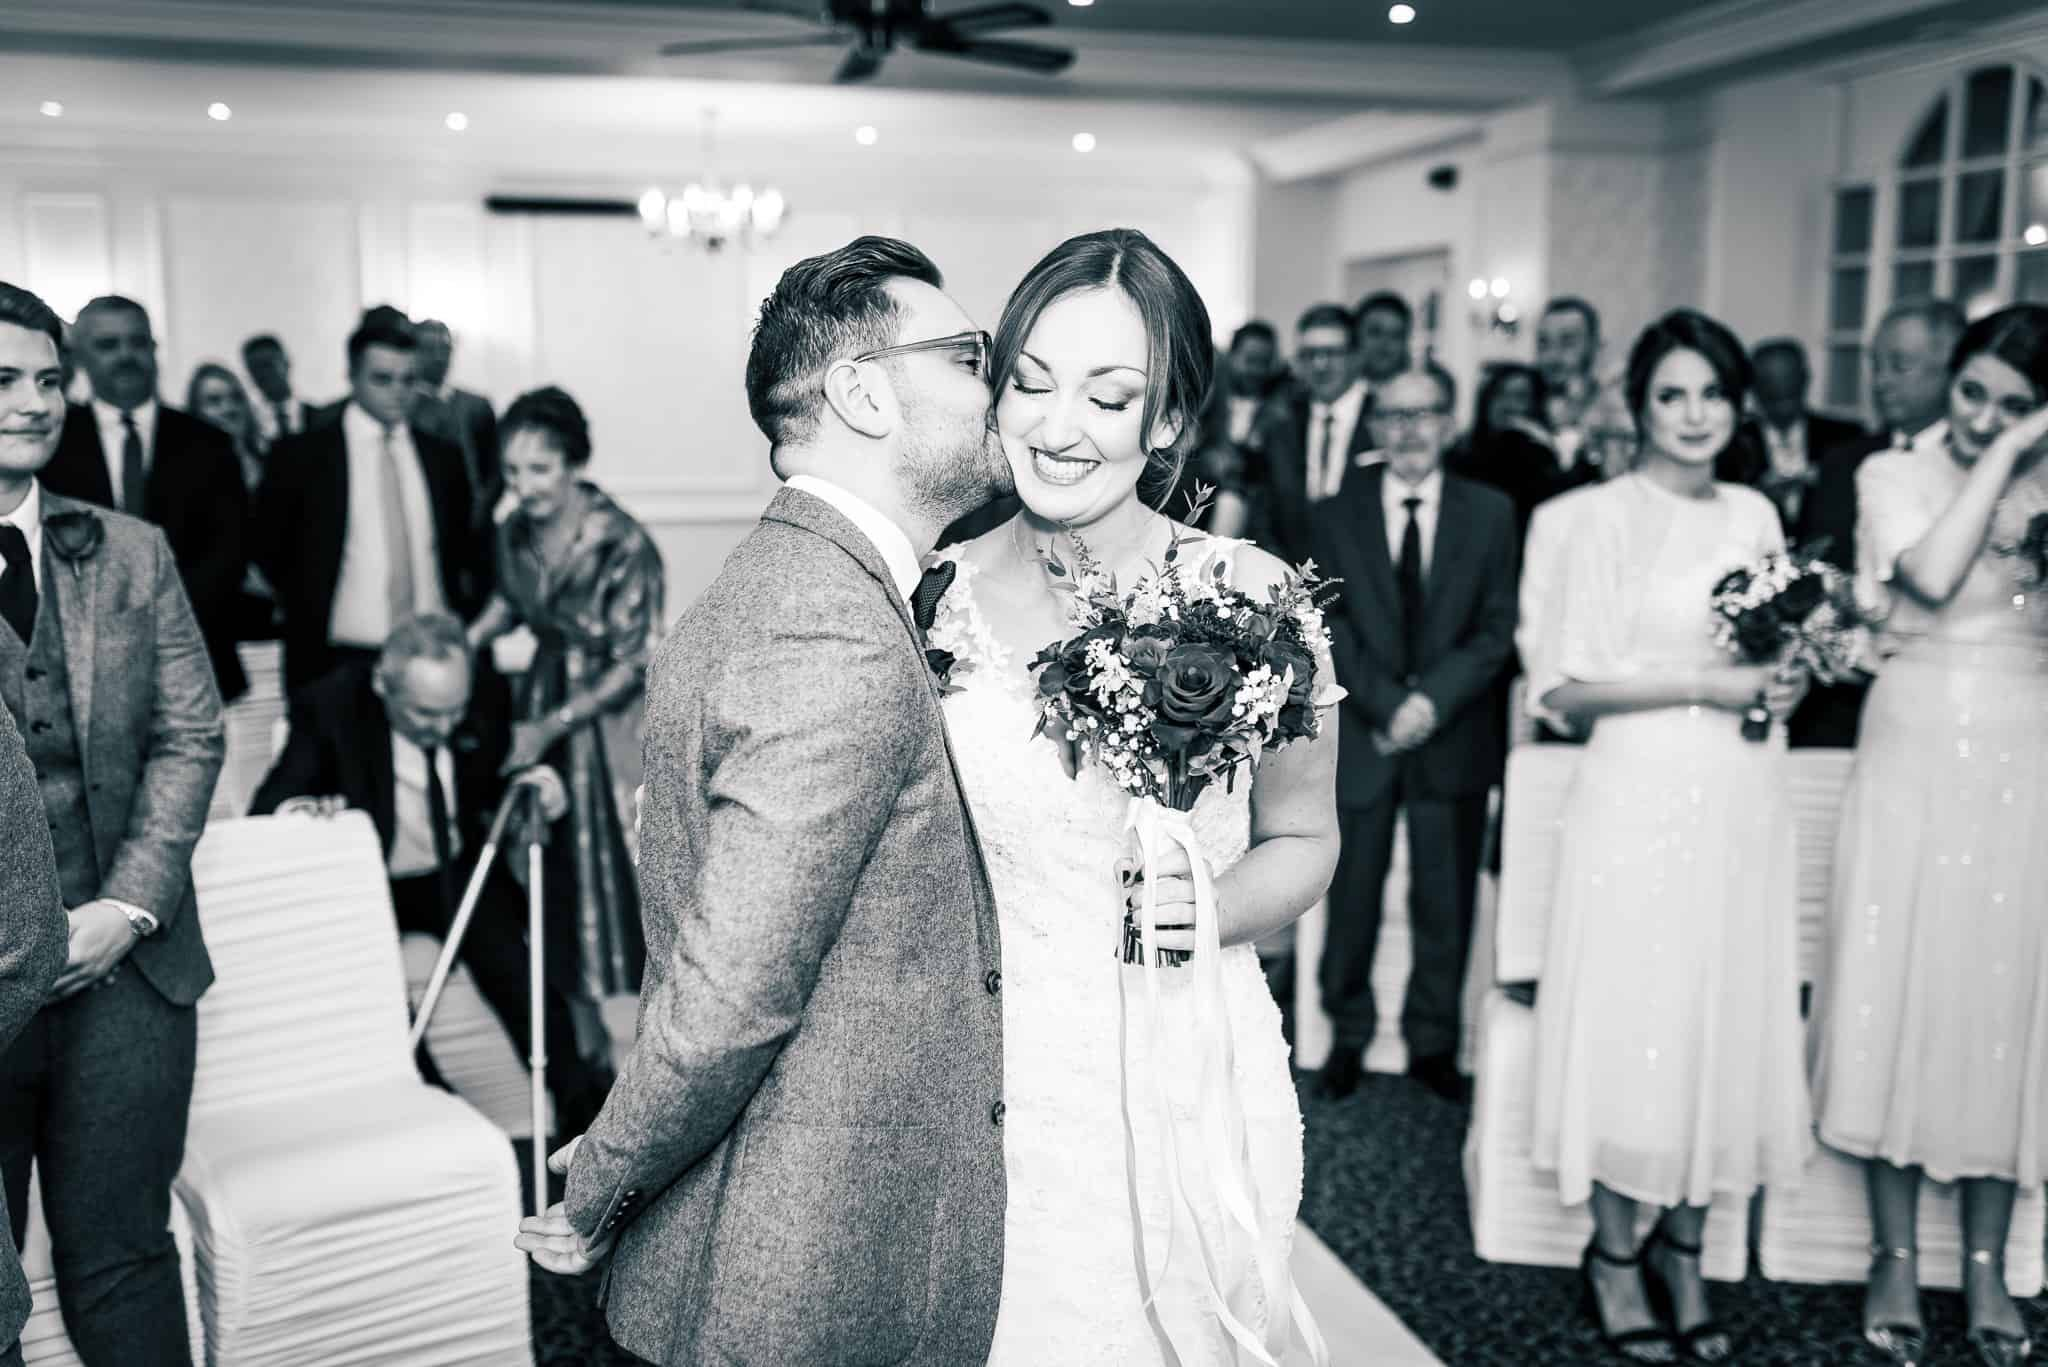 Hythe Imperial Wedding Photographer review from Tara